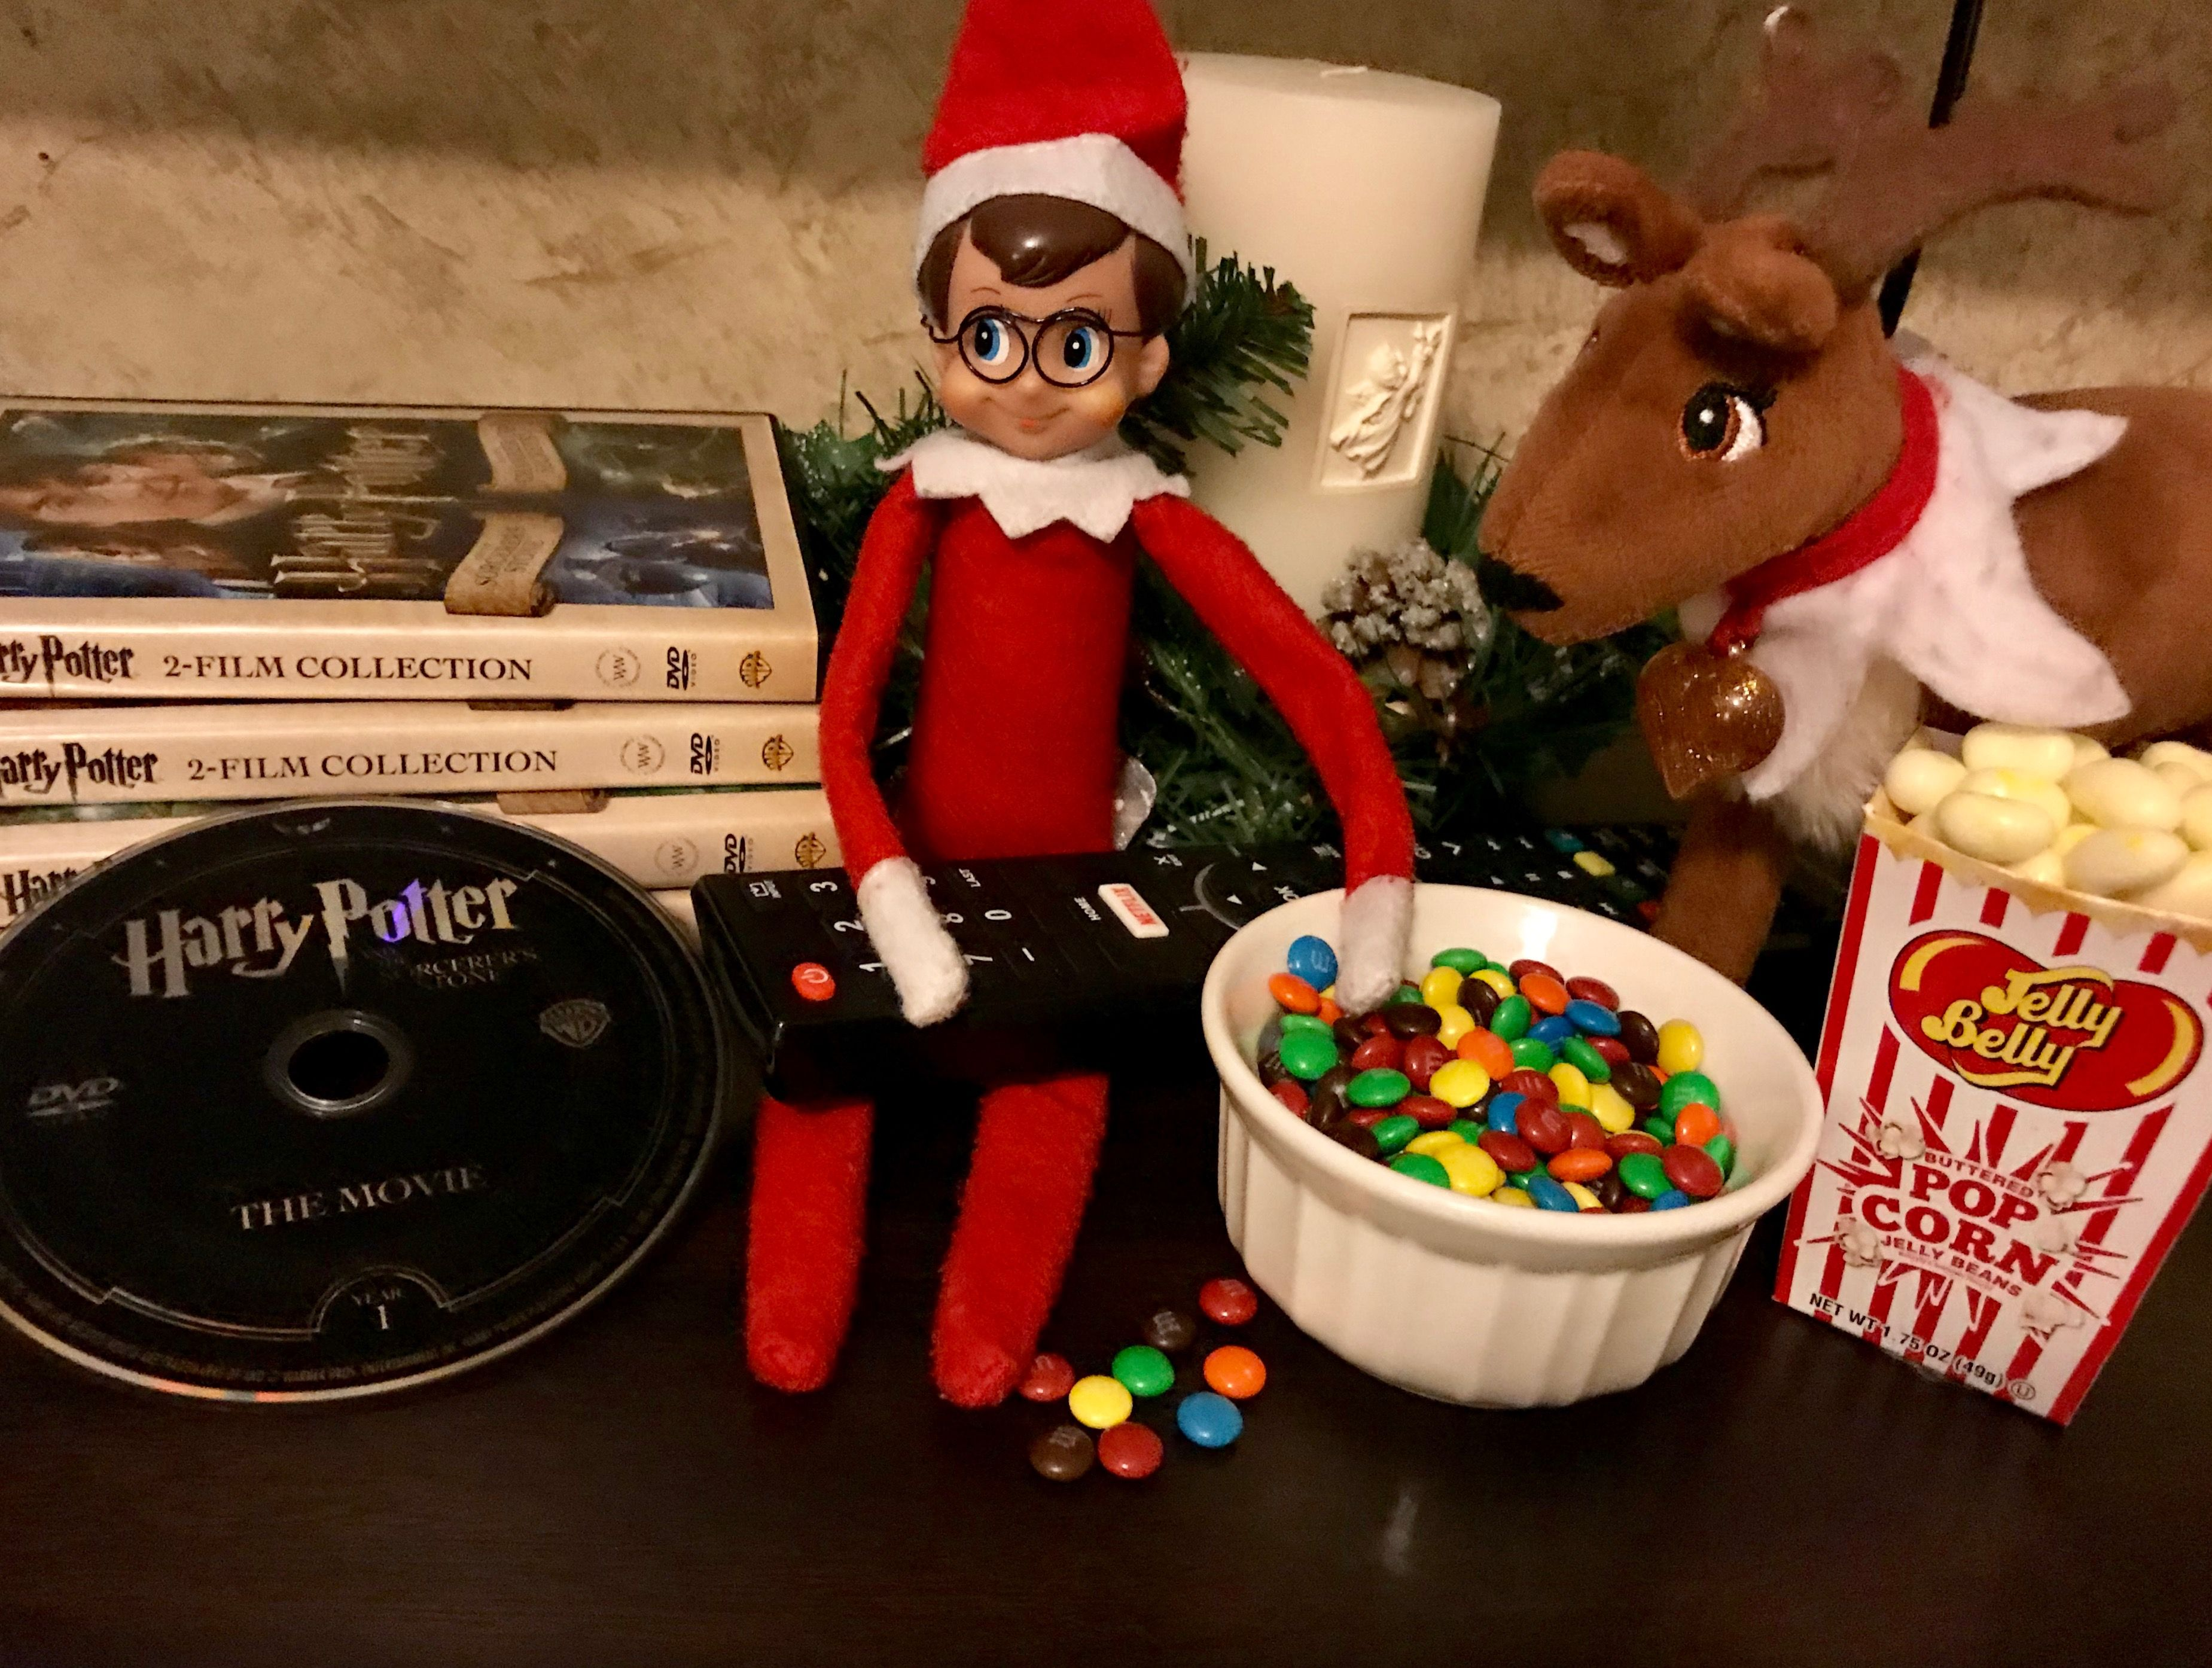 Pin By Alina McMillan On Our Harry Potter Elf The Shelf